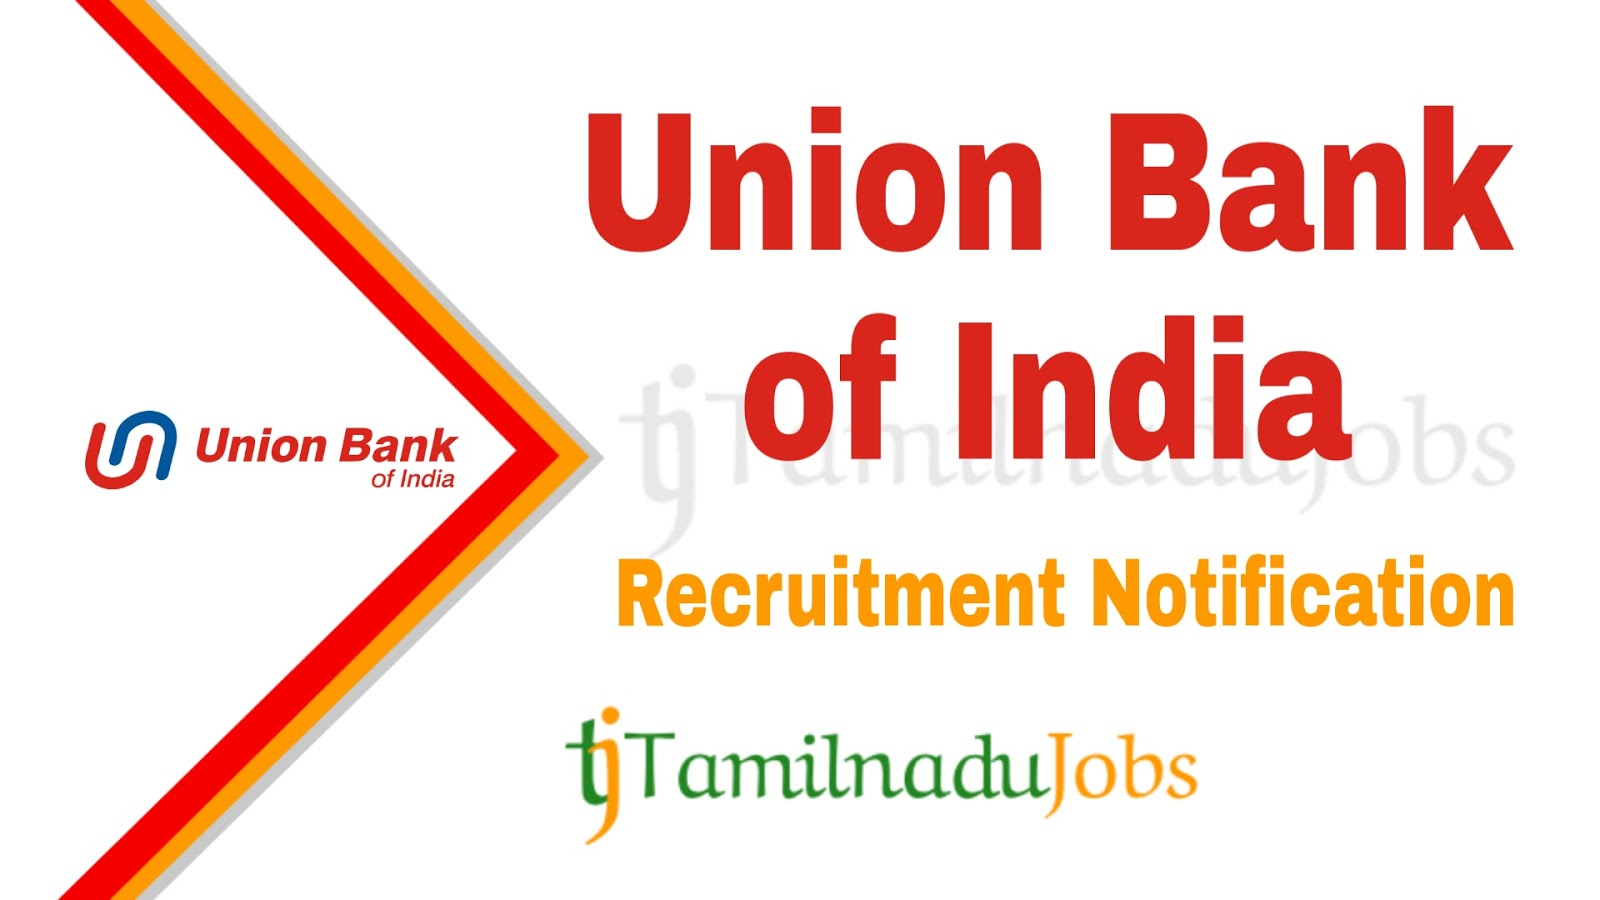 Union Bank of India Recruitment Notification, govt jobs for MBA, govt jobs for graduates